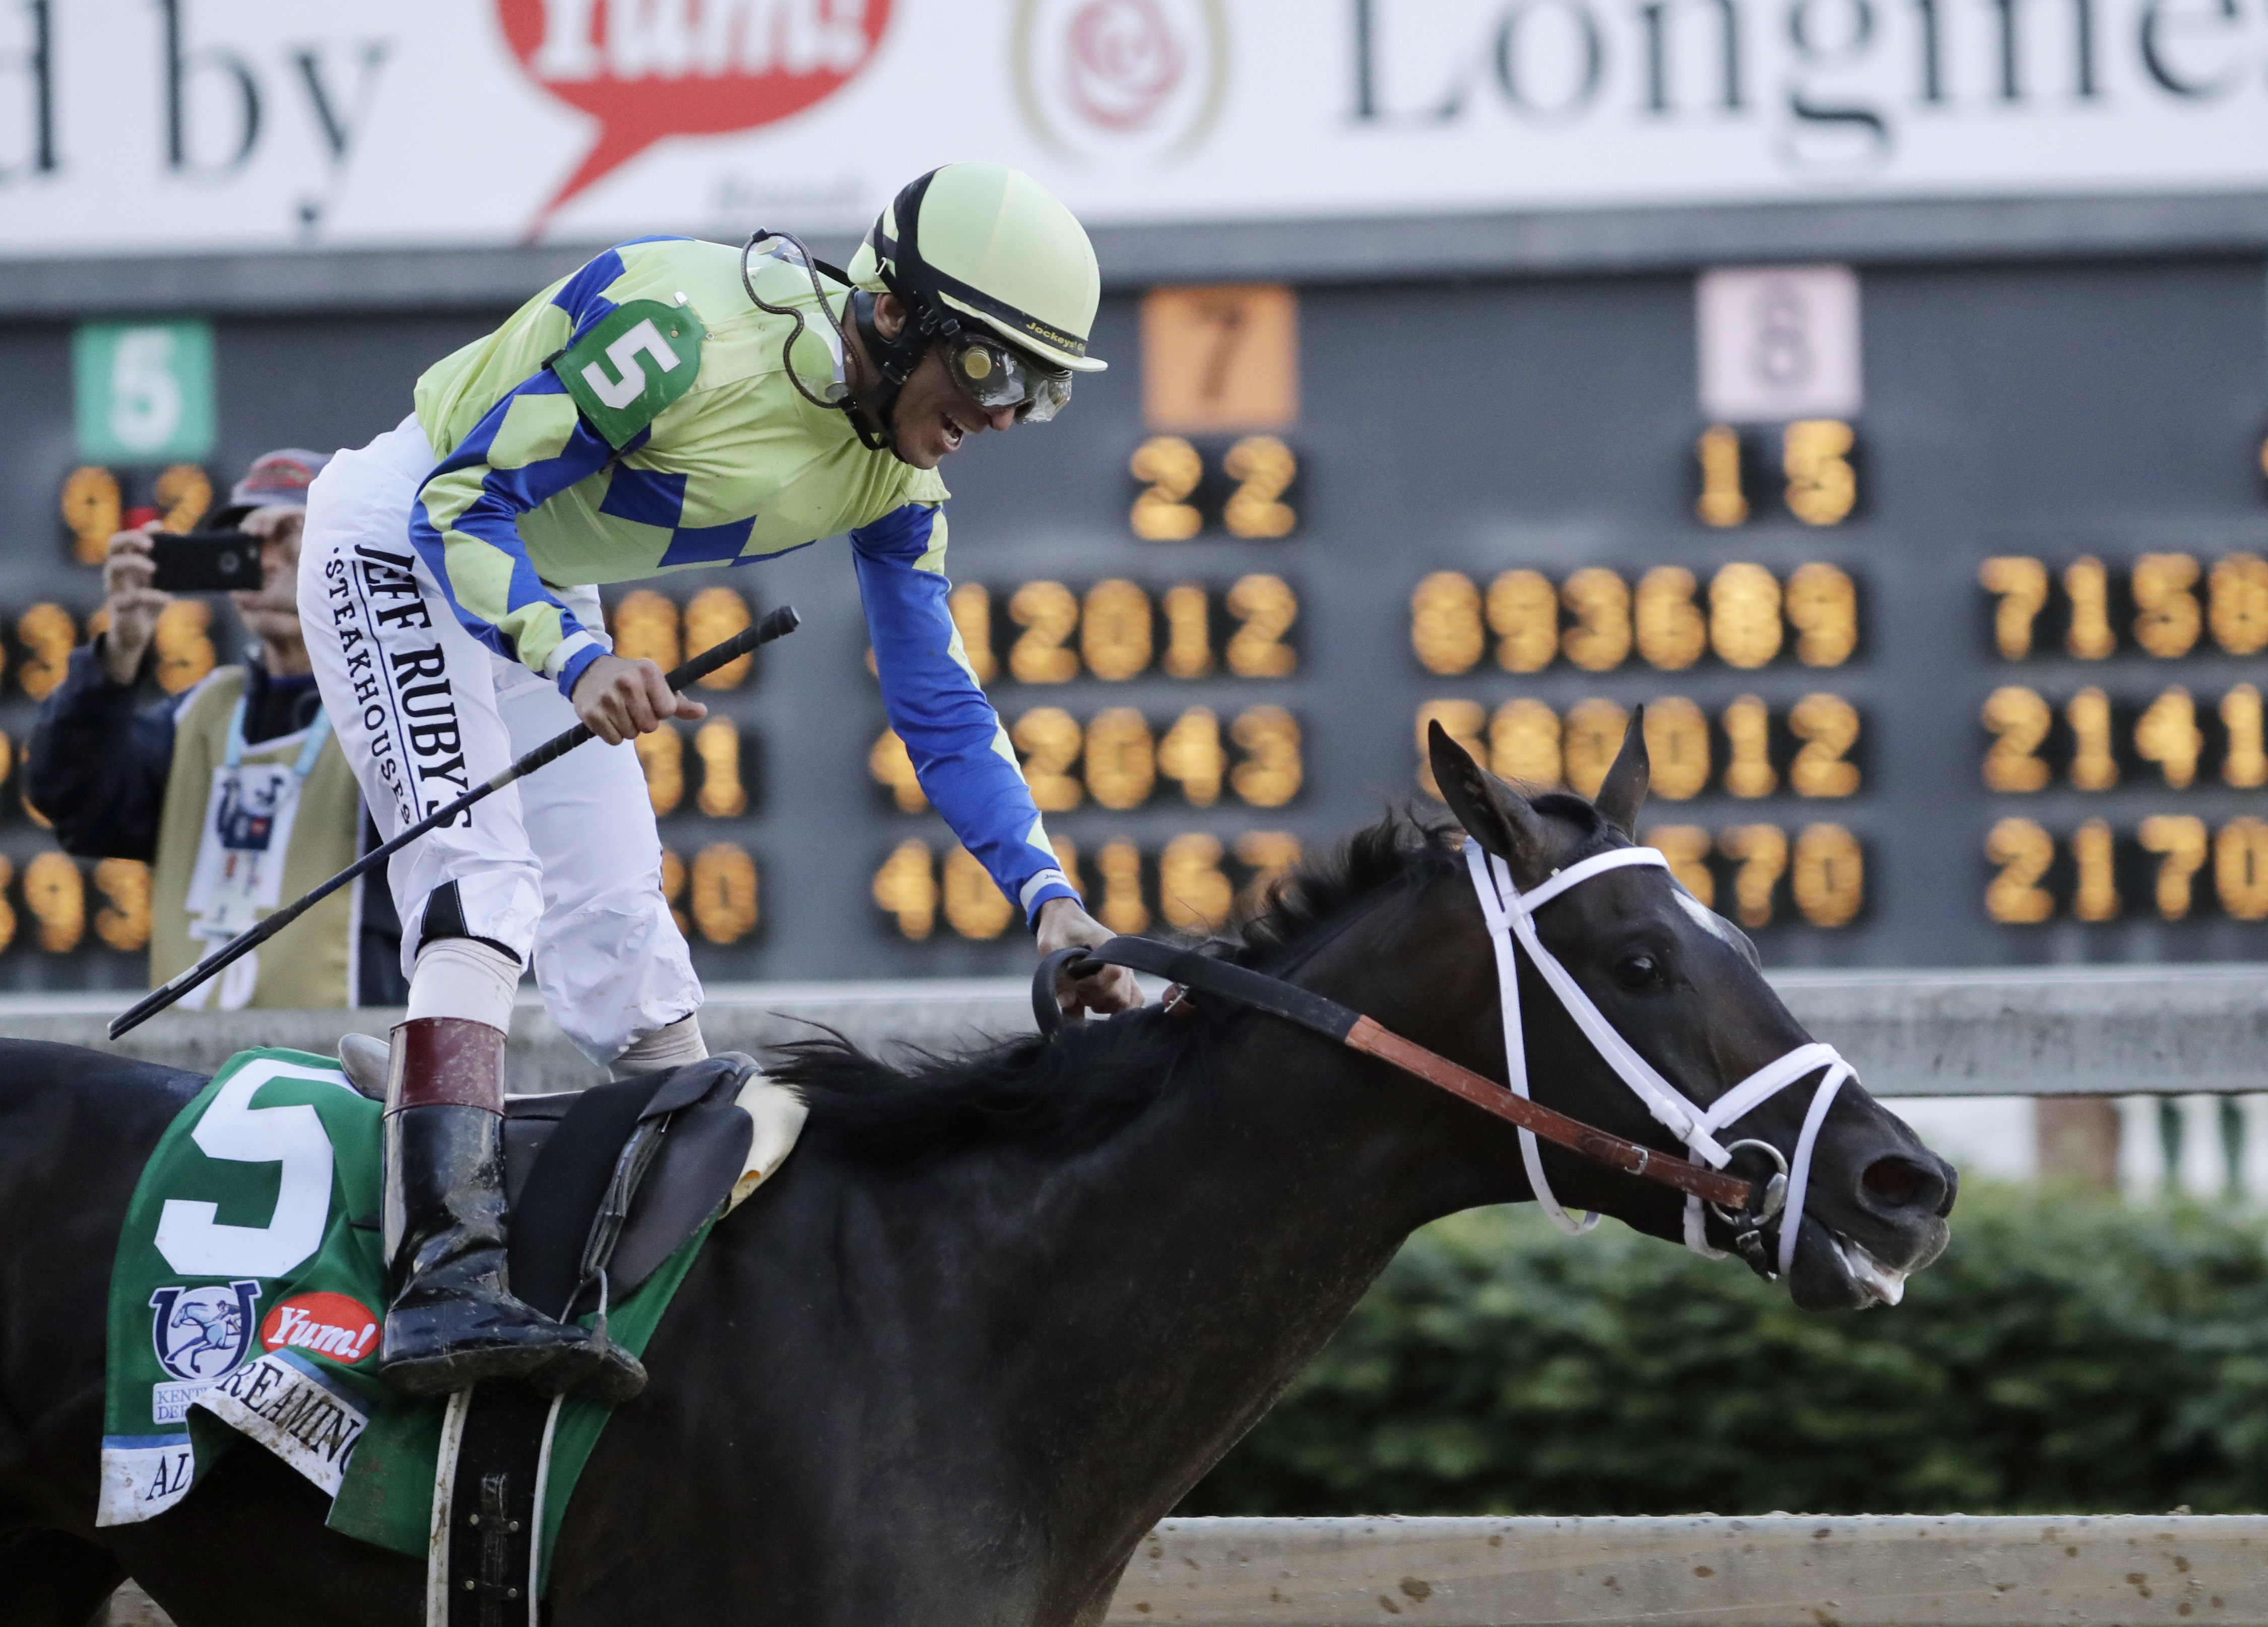 John Velazquez rides Always Dreaming to victory in the 143rd running of the Kentucky Derby horse race at Churchill Downs Saturday, May 6, 2017, in Louisville, Ky. (AP Photo/Tim Donnelly)